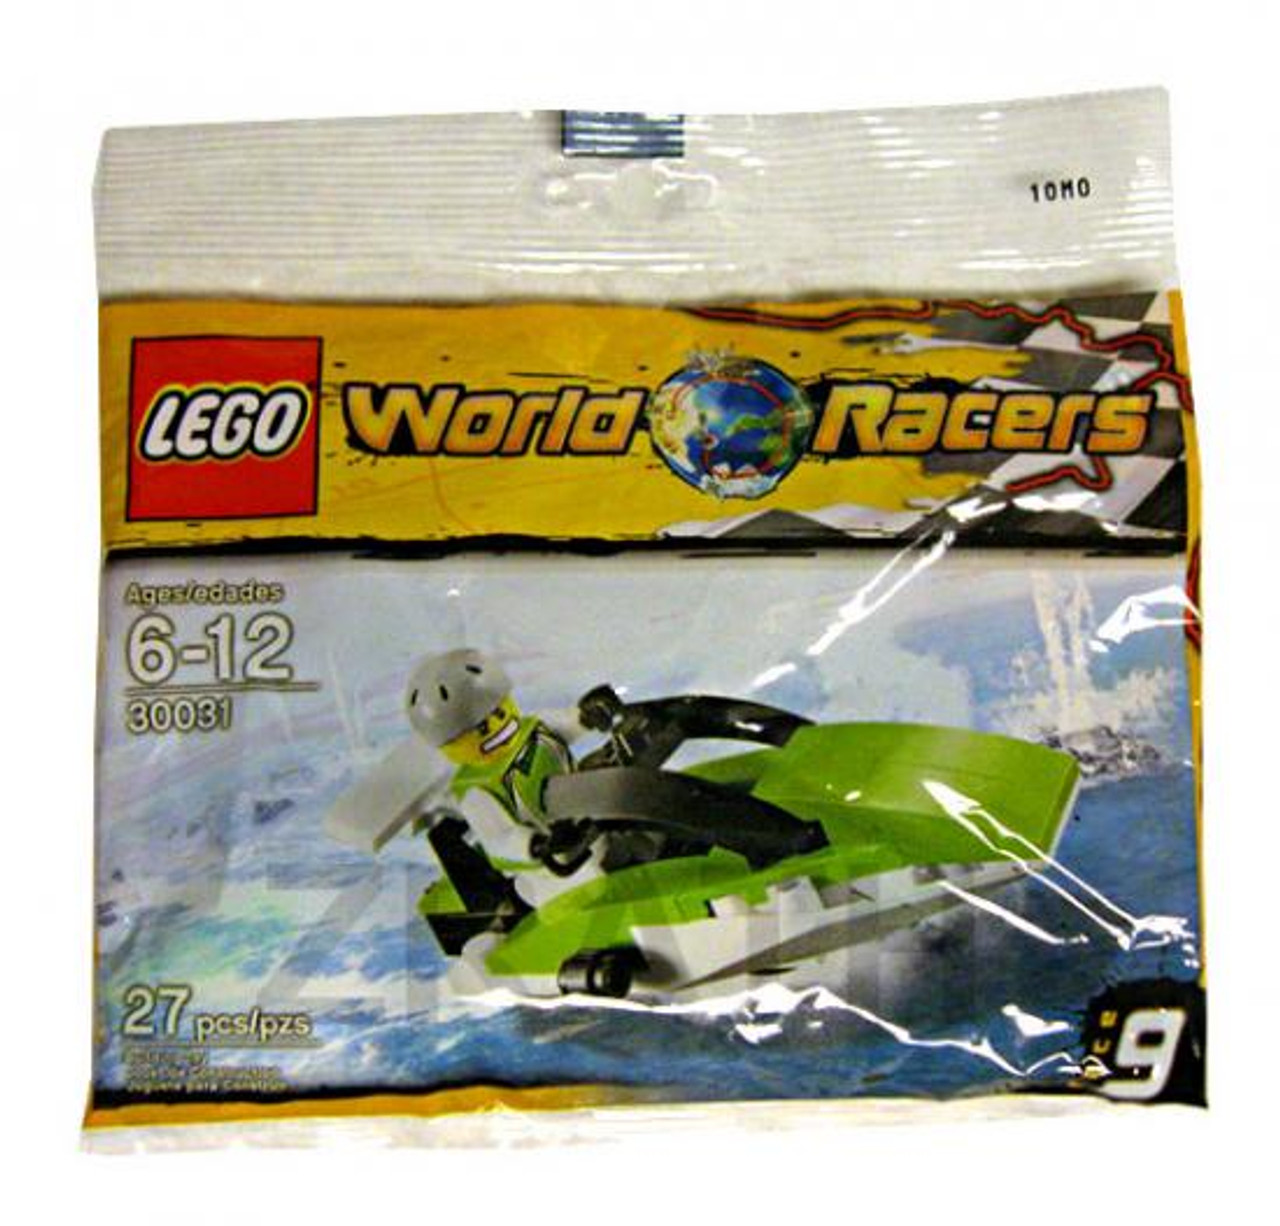 LEGO World Racers Powerboat Mini Set #30031 [Bagged]